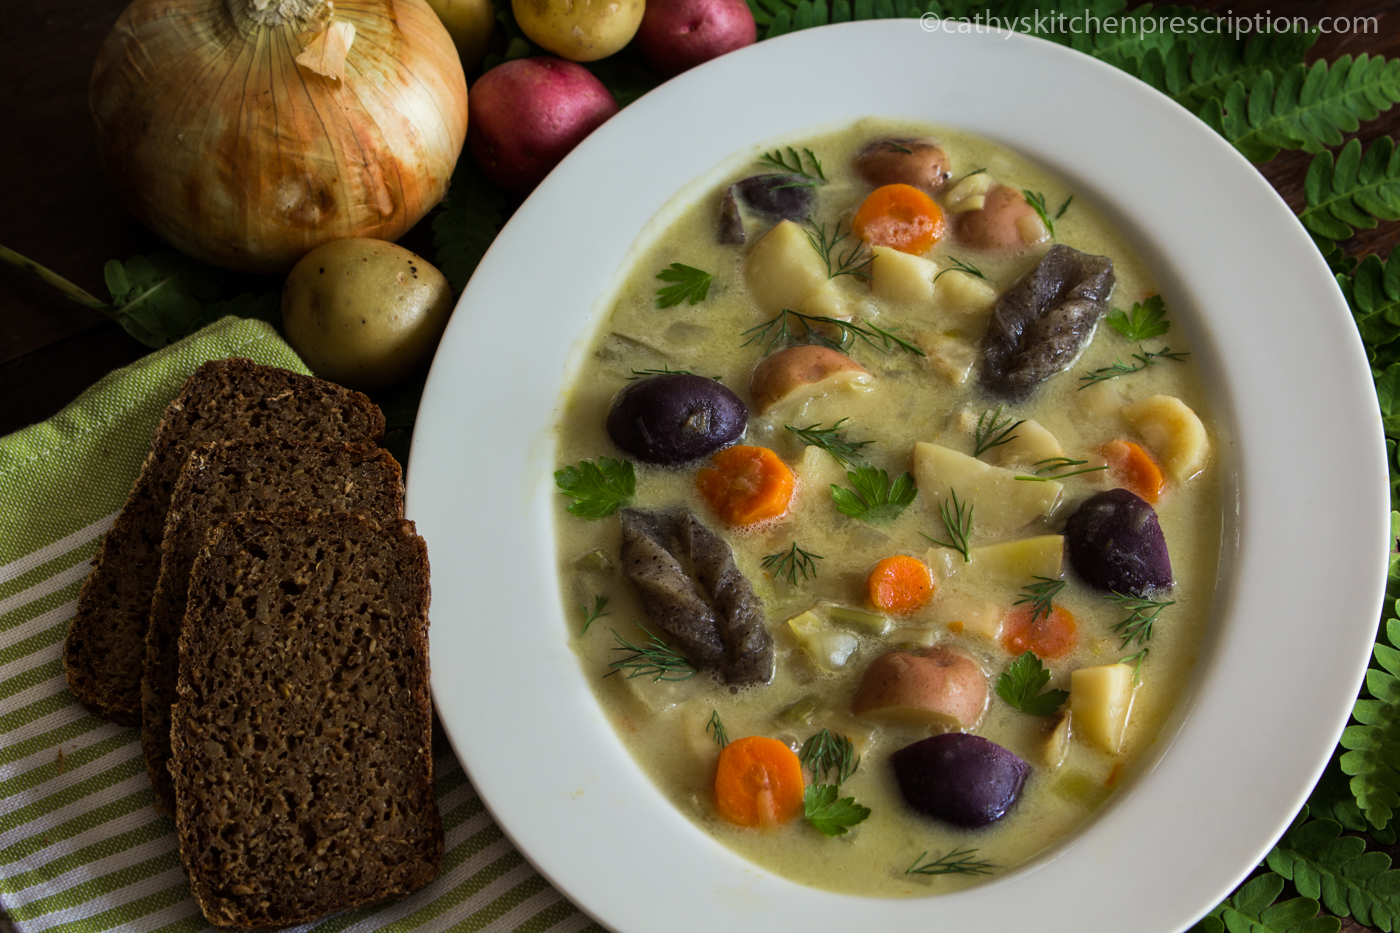 Norwegian Fishless Fiskesuppe